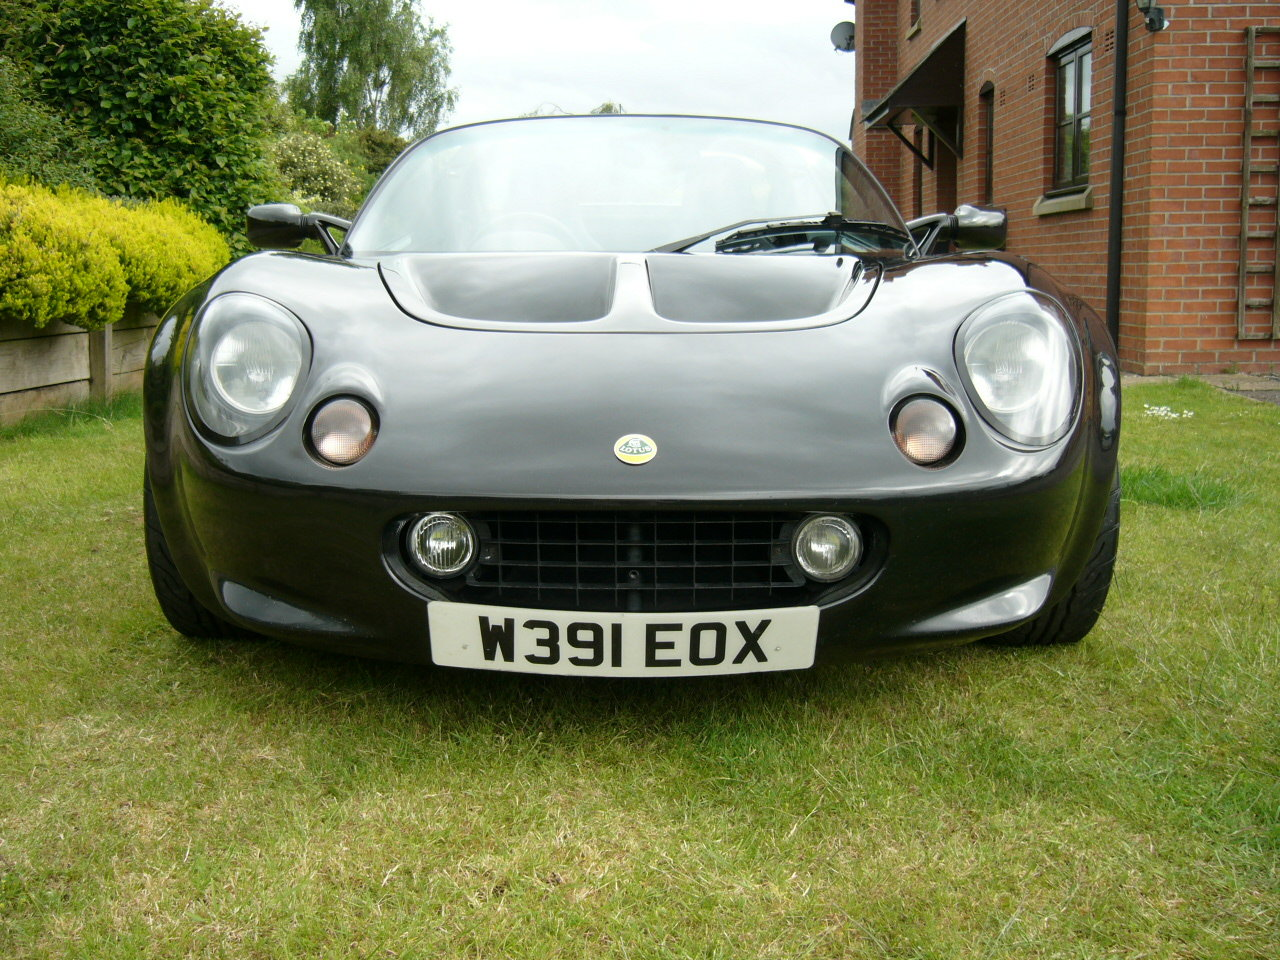 2000 Lotus Elise S1 Sport 160 (SVA) SOLD (picture 2 of 6)